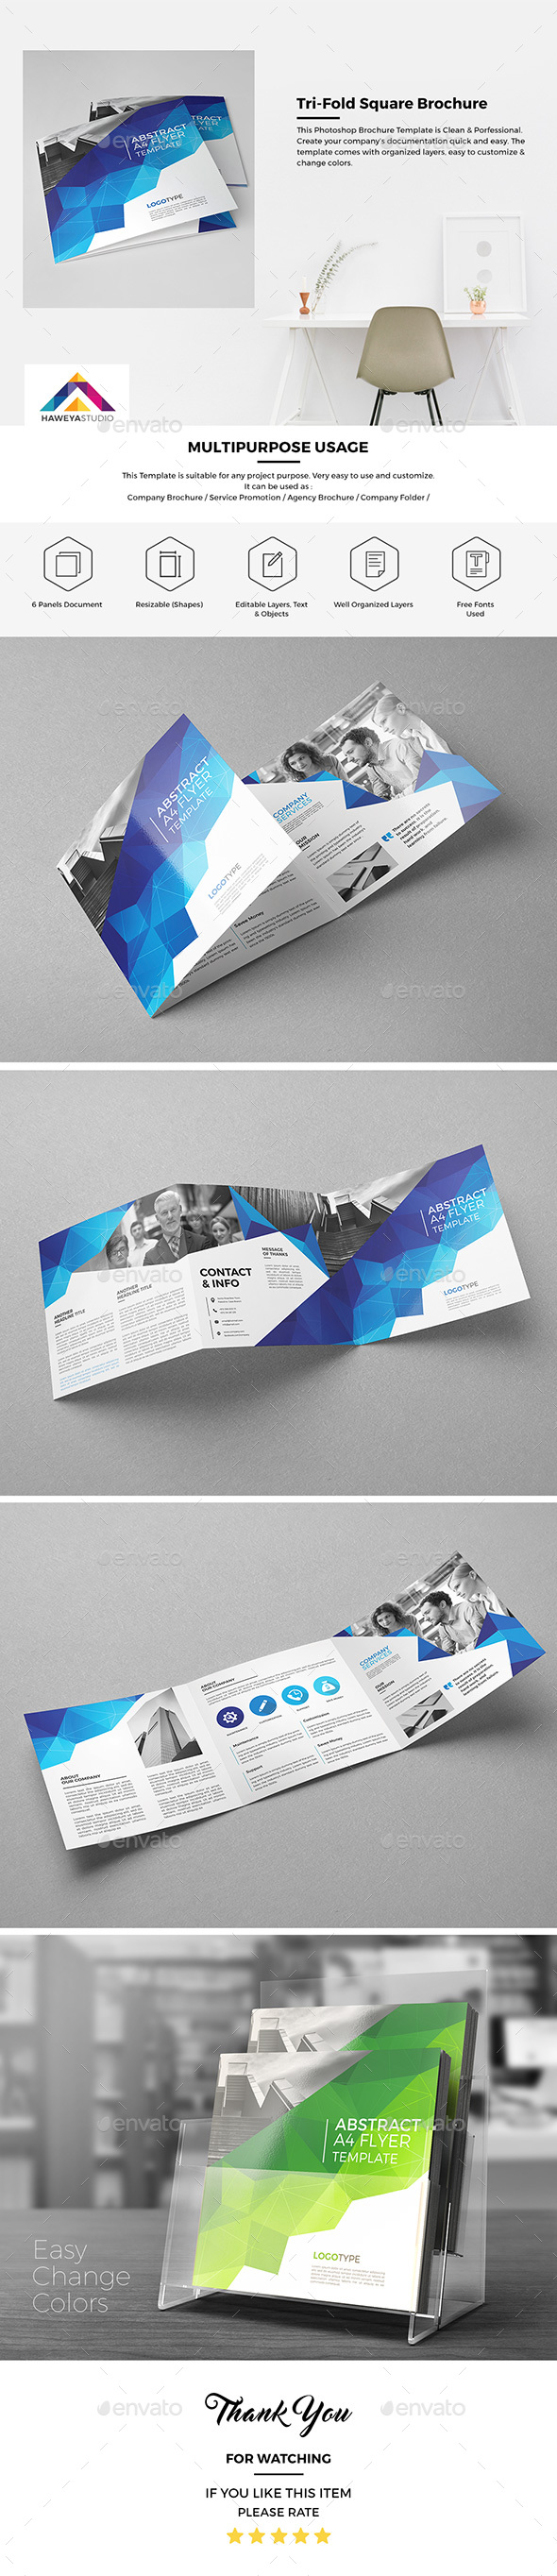 Haweya Tri-Fold Square Brochure 03 - Corporate Brochures